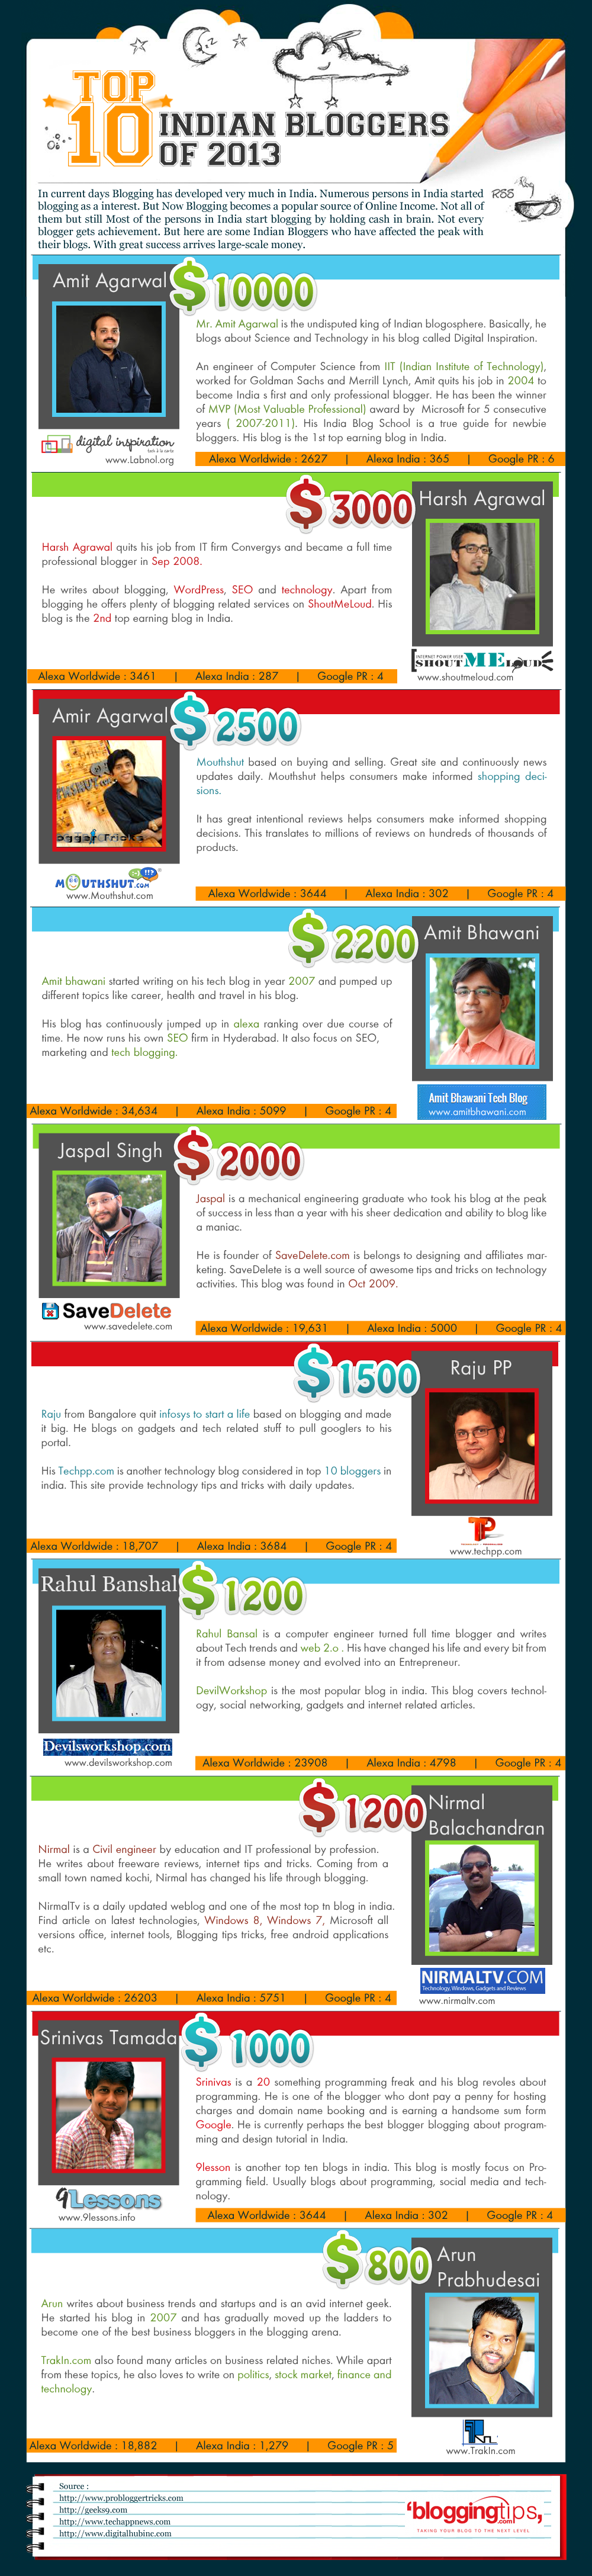 Top 10 Indian bloggers of 2013